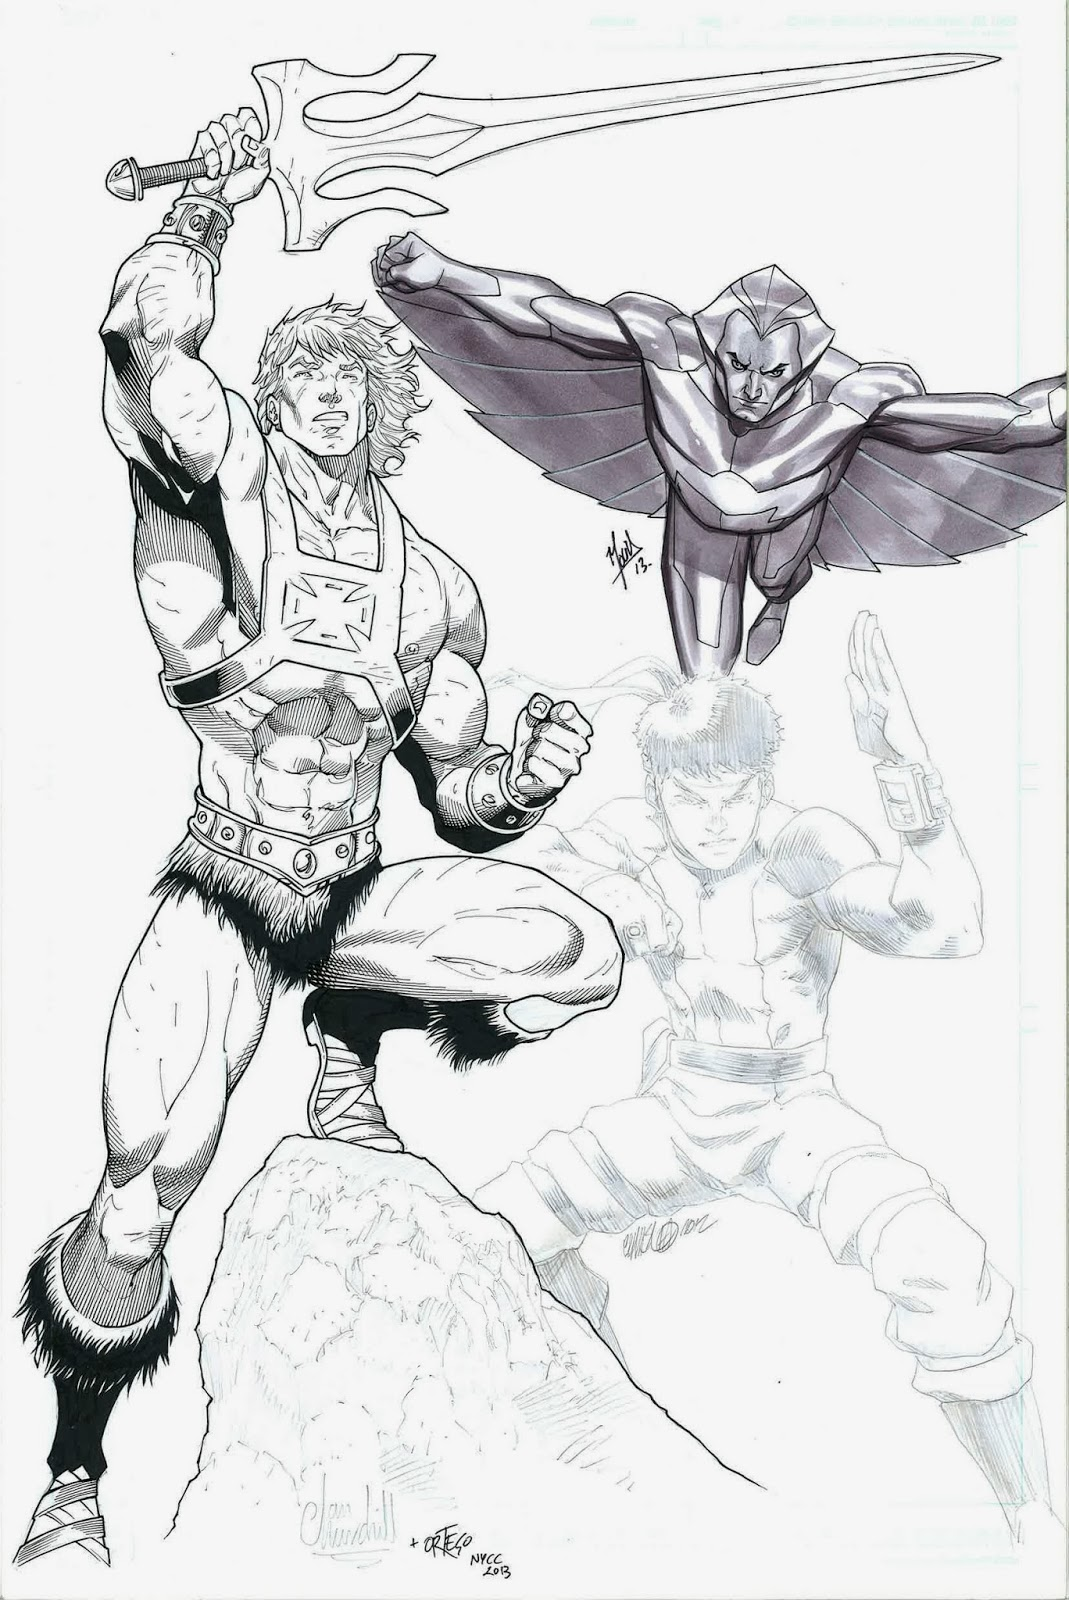 He-Man and the Masters of the Universe, Quicksilver from Silverhawks, and Karate-1 from Bionic Six